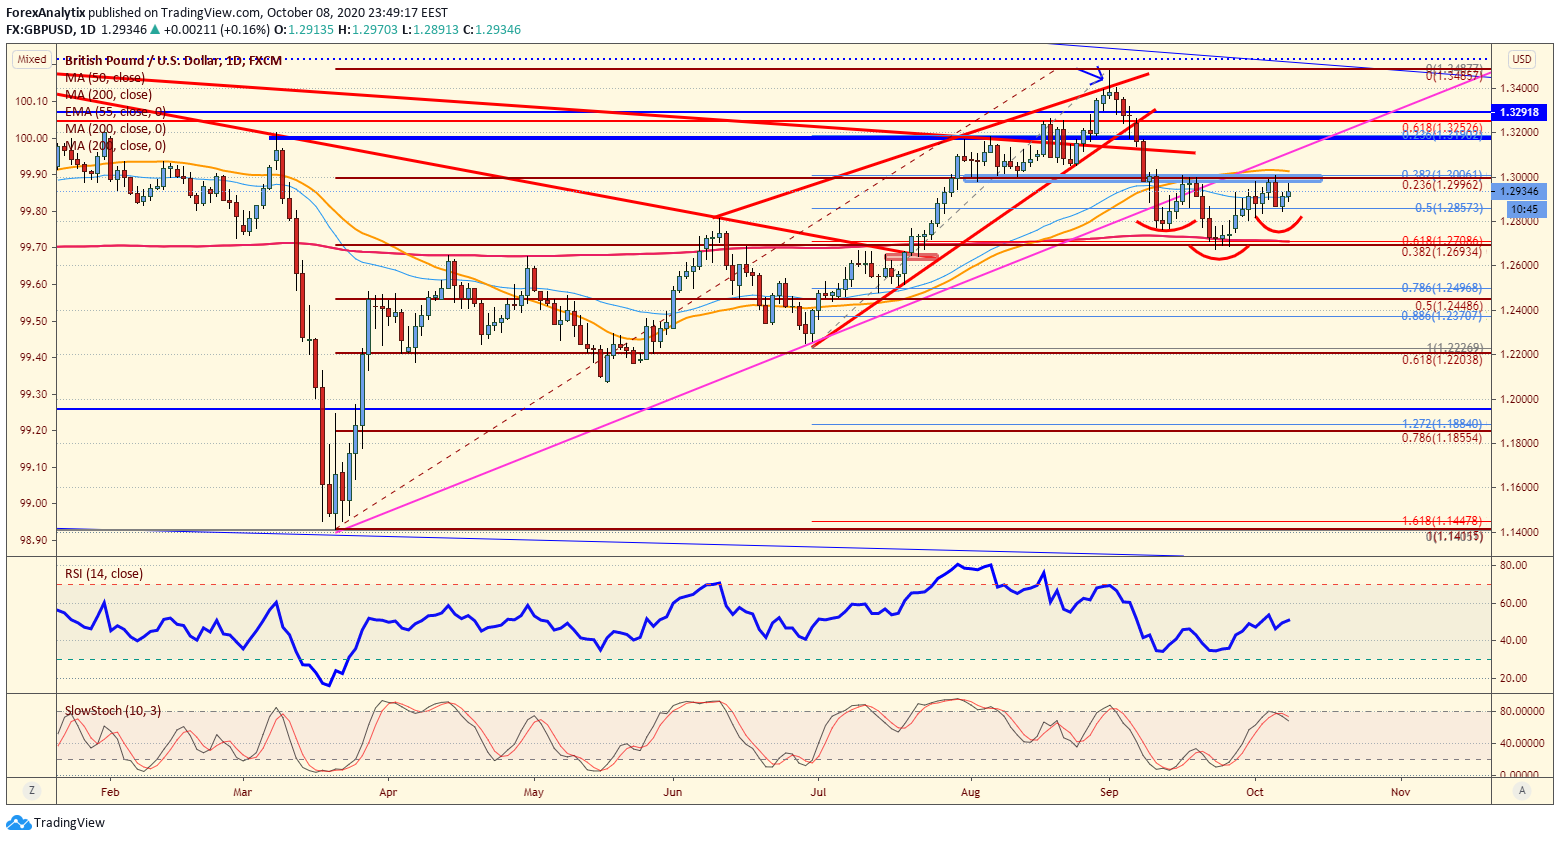 GBP/USD 1-Day Chart.